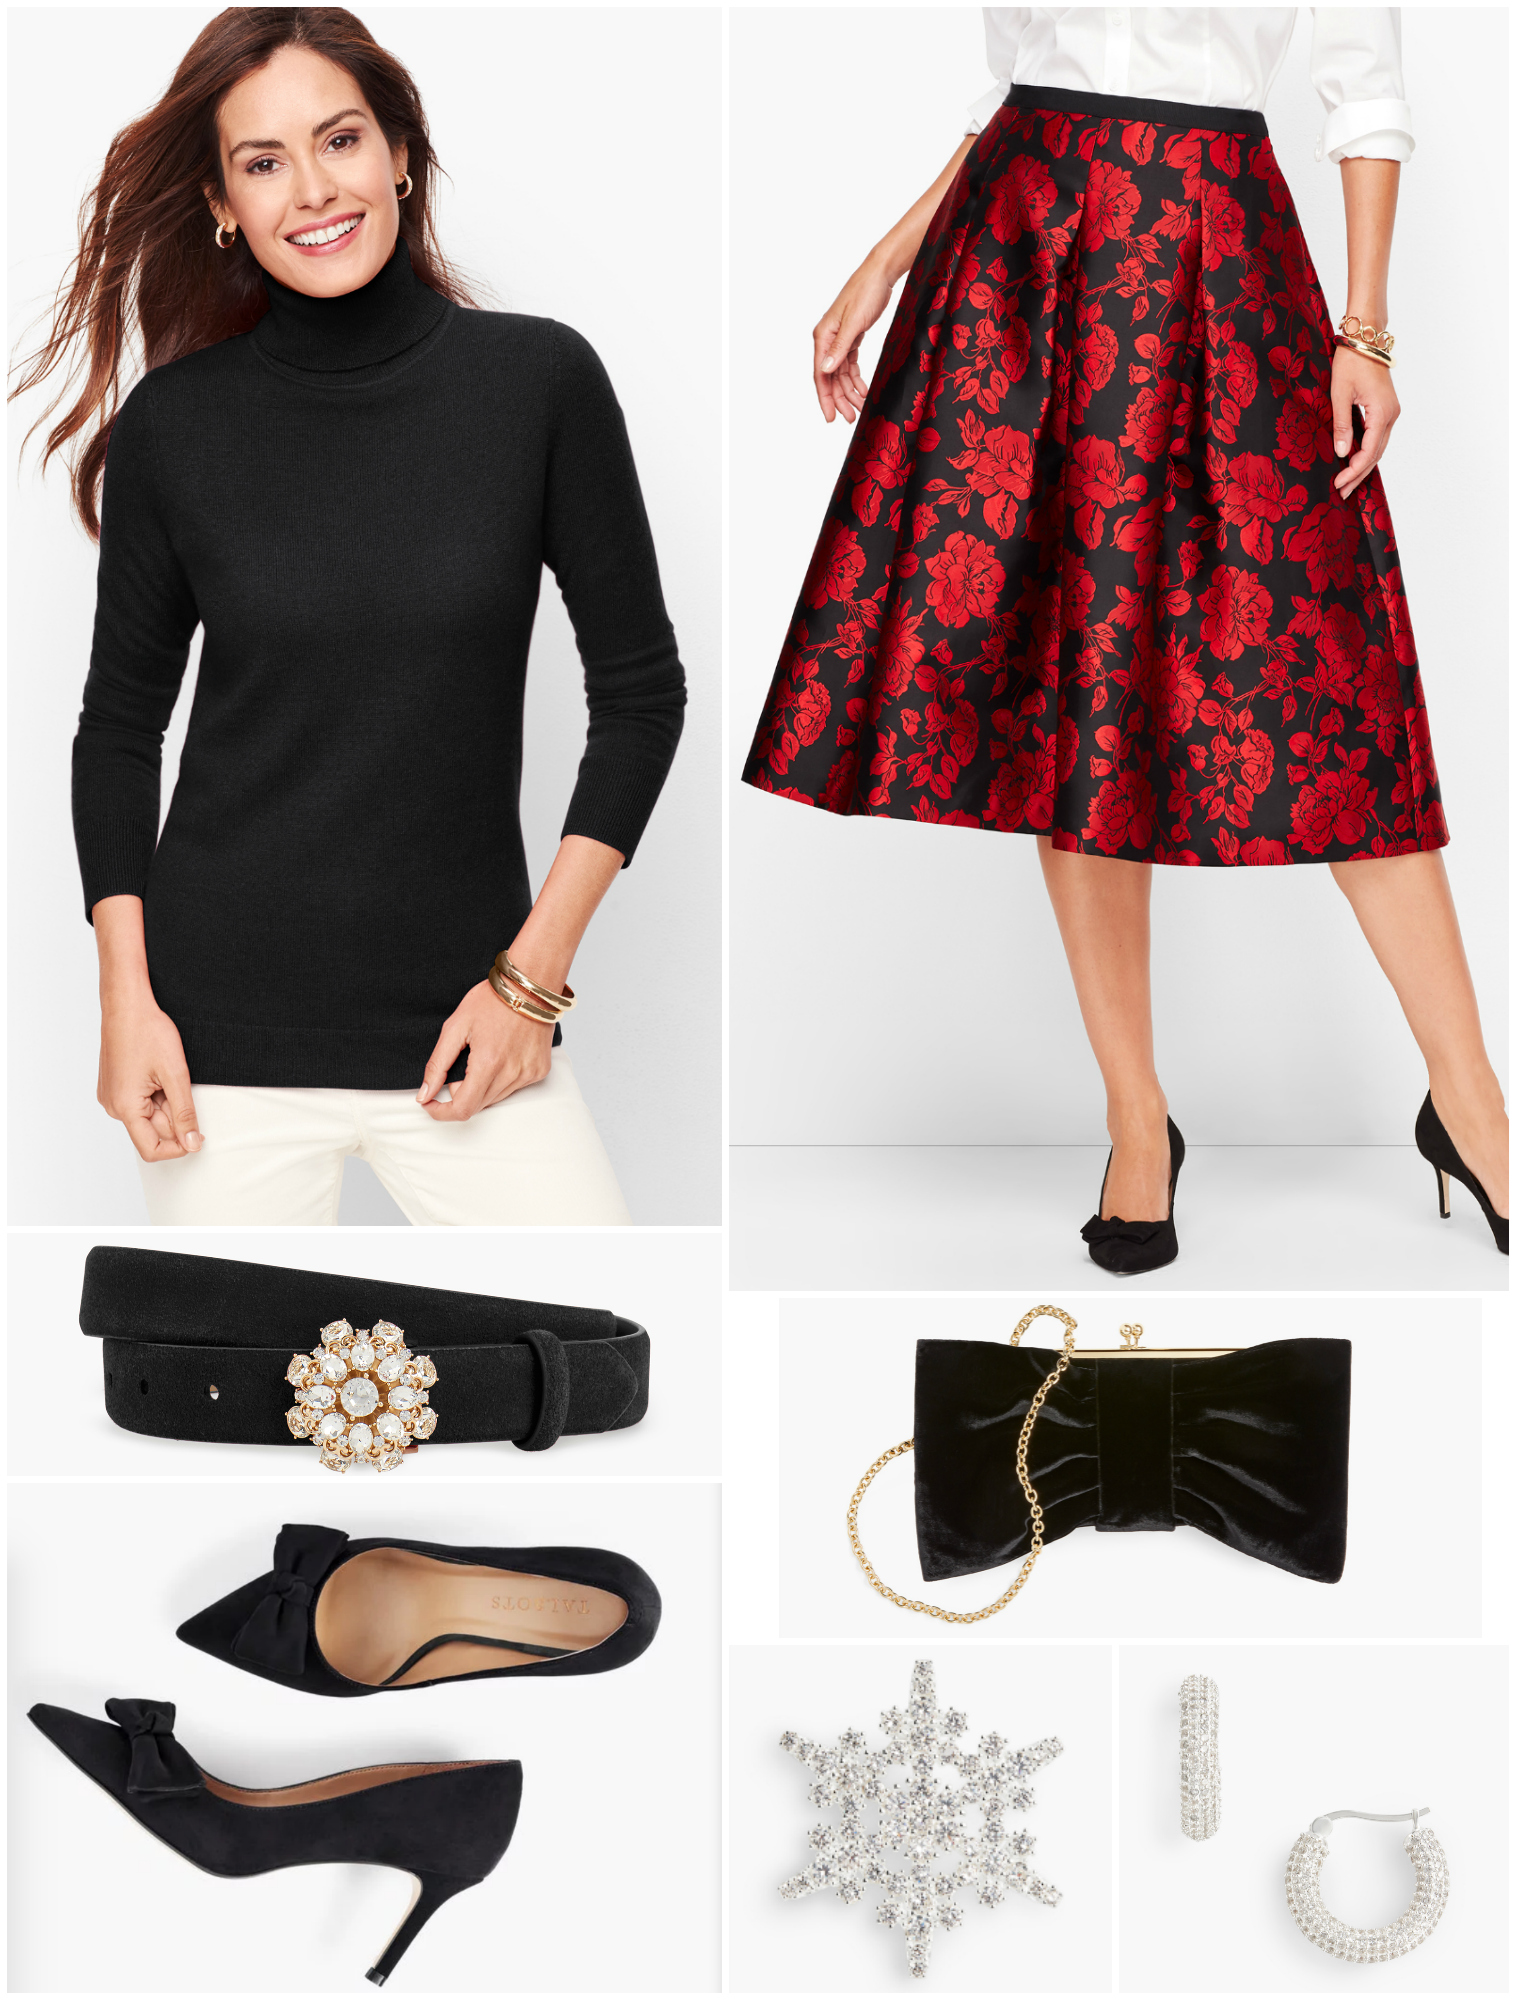 Removing the tights and adding heels, the same ensemble feels more fun and festive.